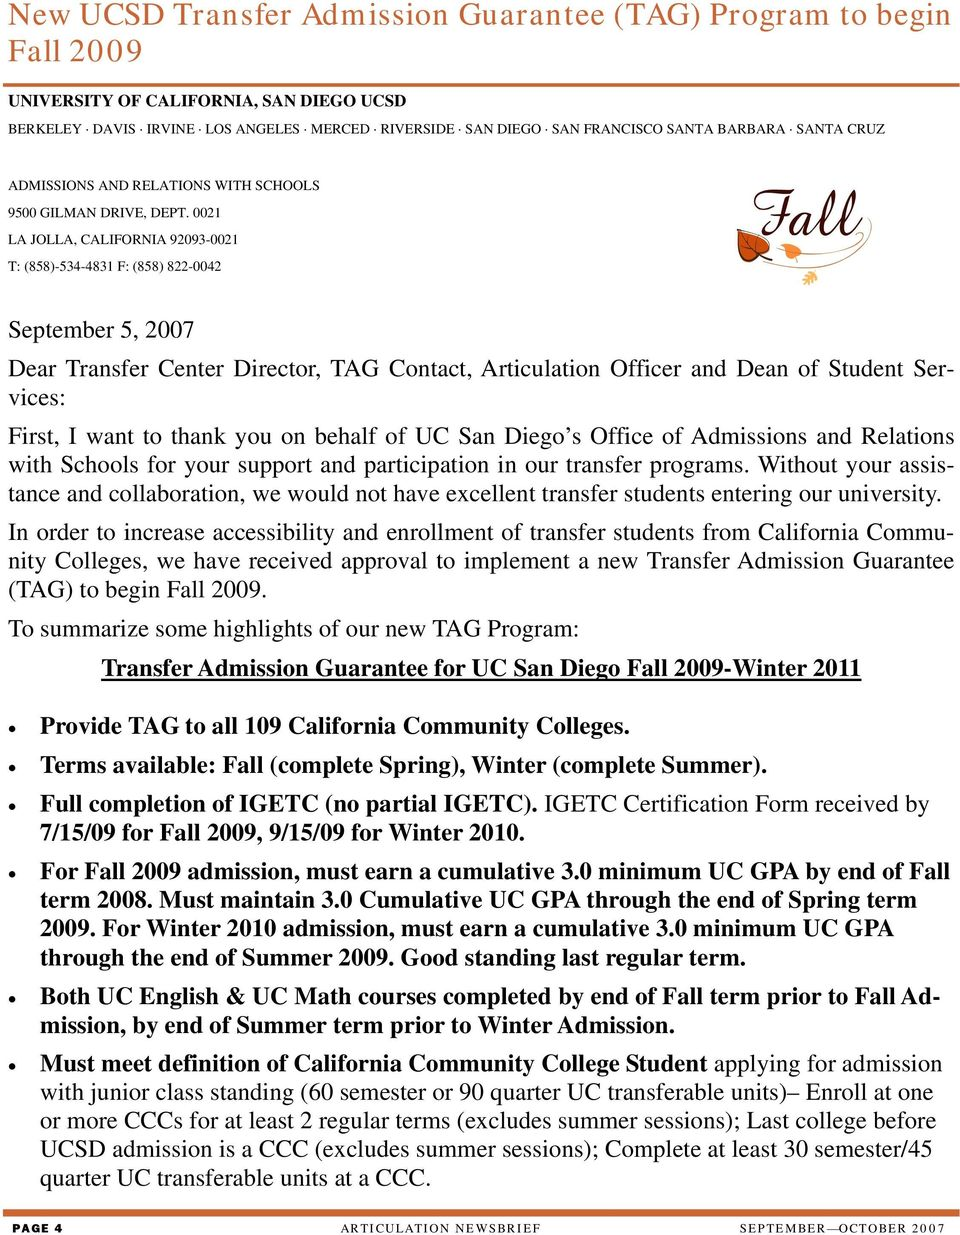 0021 LA JOLLA, CALIFORNIA 92093-0021 T: (858)-534-4831 F: (858) 822-0042 September 5, 2007 Dear Transfer Center Director, TAG Contact, Articulation Officer and Dean of Student Services: First, I want